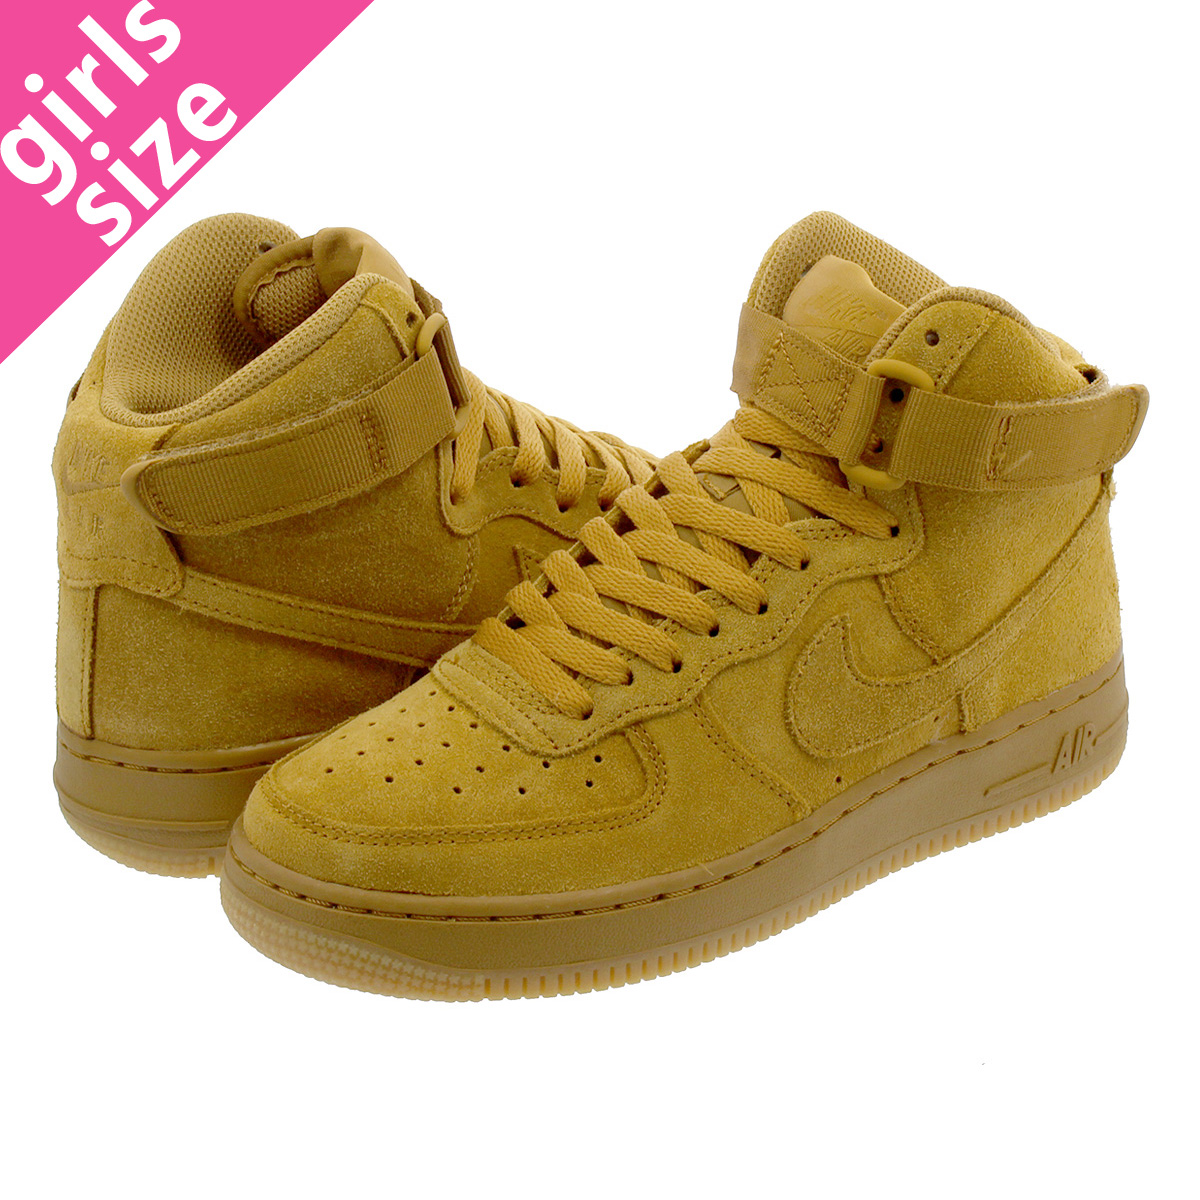 info for 5f85c 8725a NIKE AIR FORCE 1 HIGH LV8 GS Nike air force 1 high LV8 GS WHEAT GUM LIGHT  BROWN 807,617-701